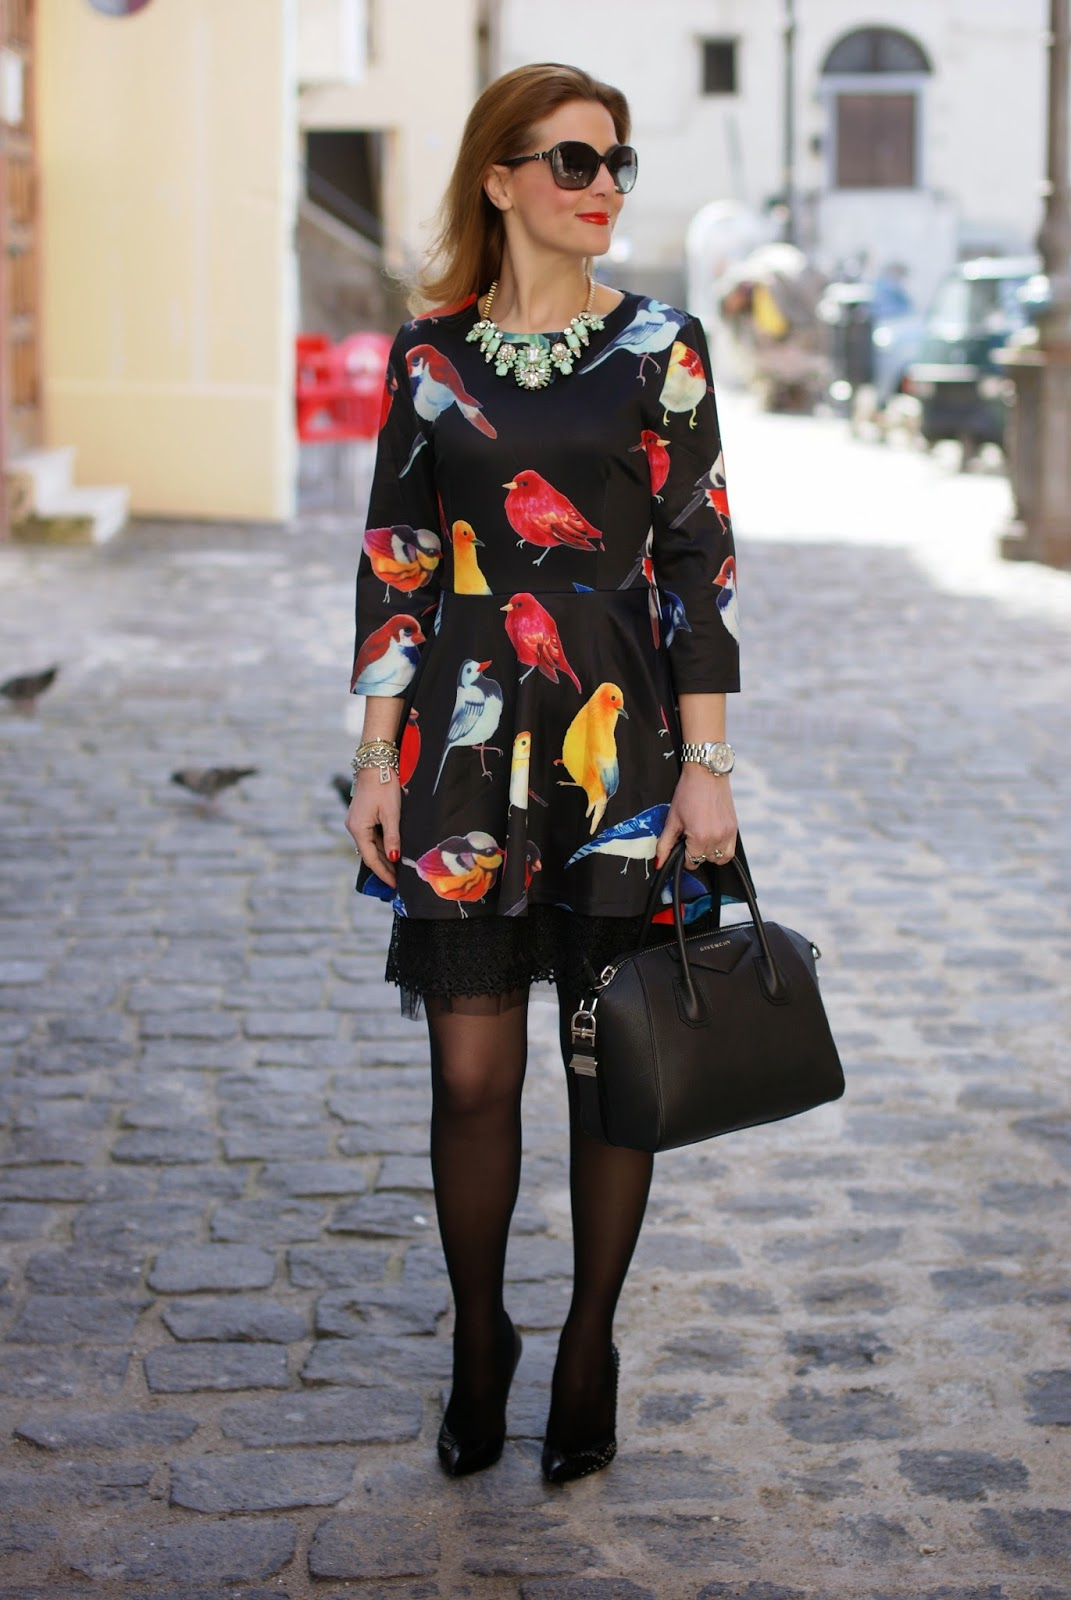 sheinside birds print dress, Molly Bracken sundress, Givenchy Antigona bag, Fashion and Cookies, fashion blogger